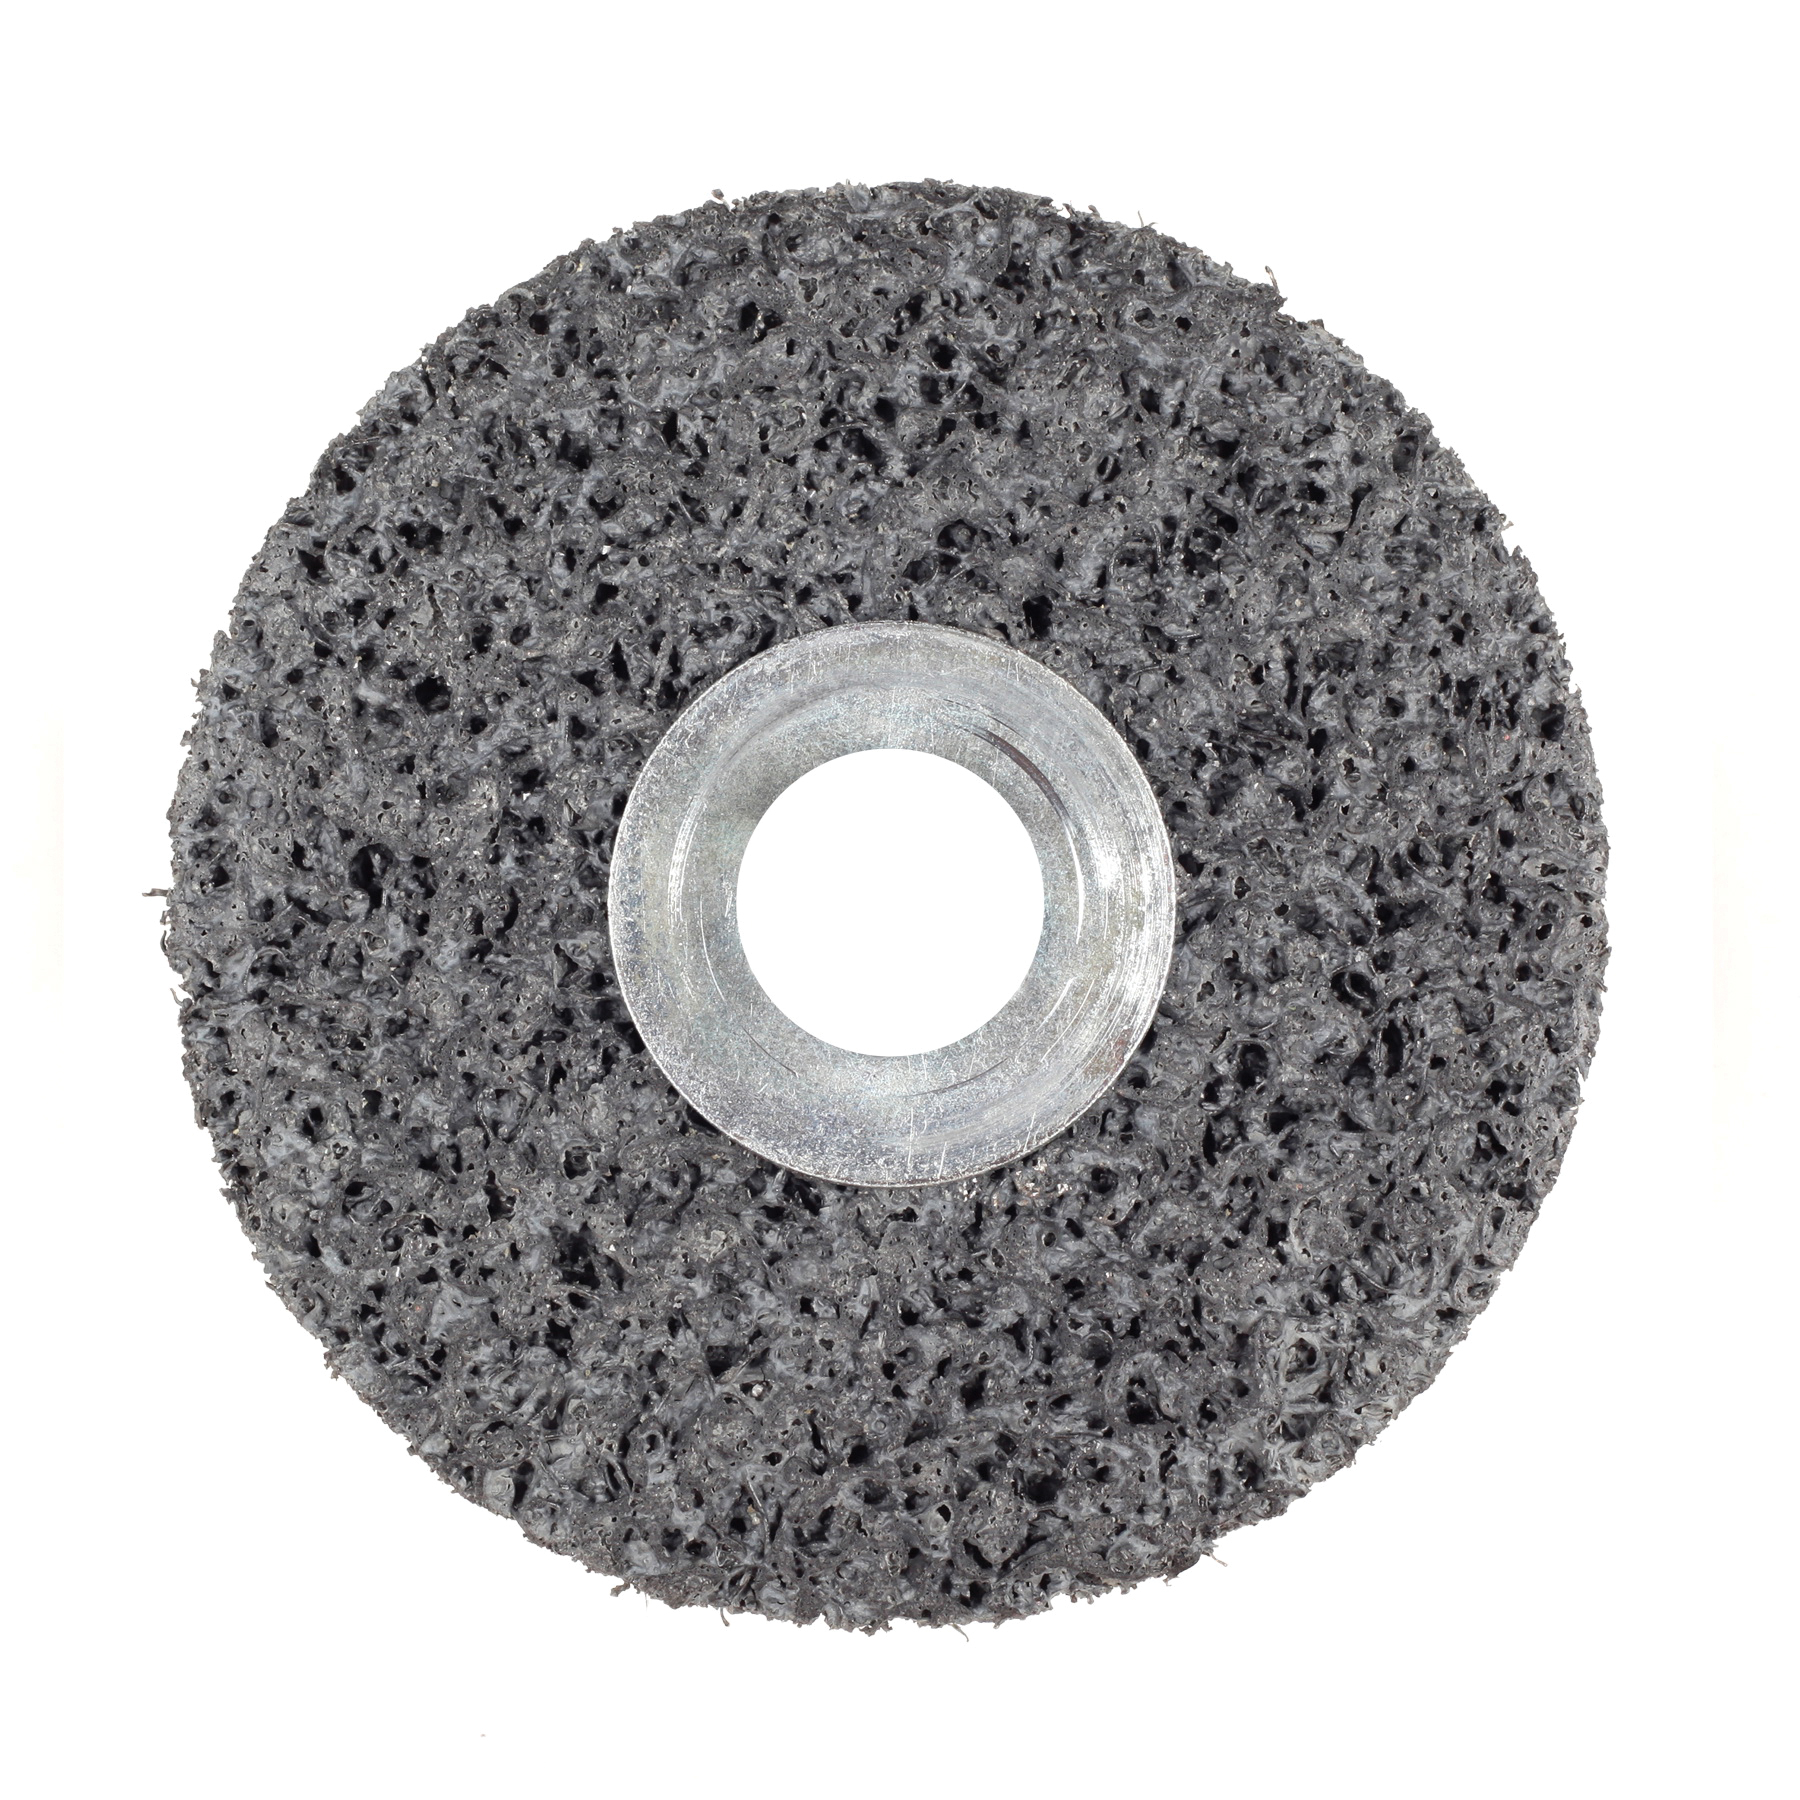 Scotch-Brite™ 048011-01005 CS-UW Clean and Strip Unitized Wheel, 2 in Dia Wheel, 1/4 in Center Hole, 1/2 in W Face, Extra Coarse Grade, Silicon Carbide Abrasive